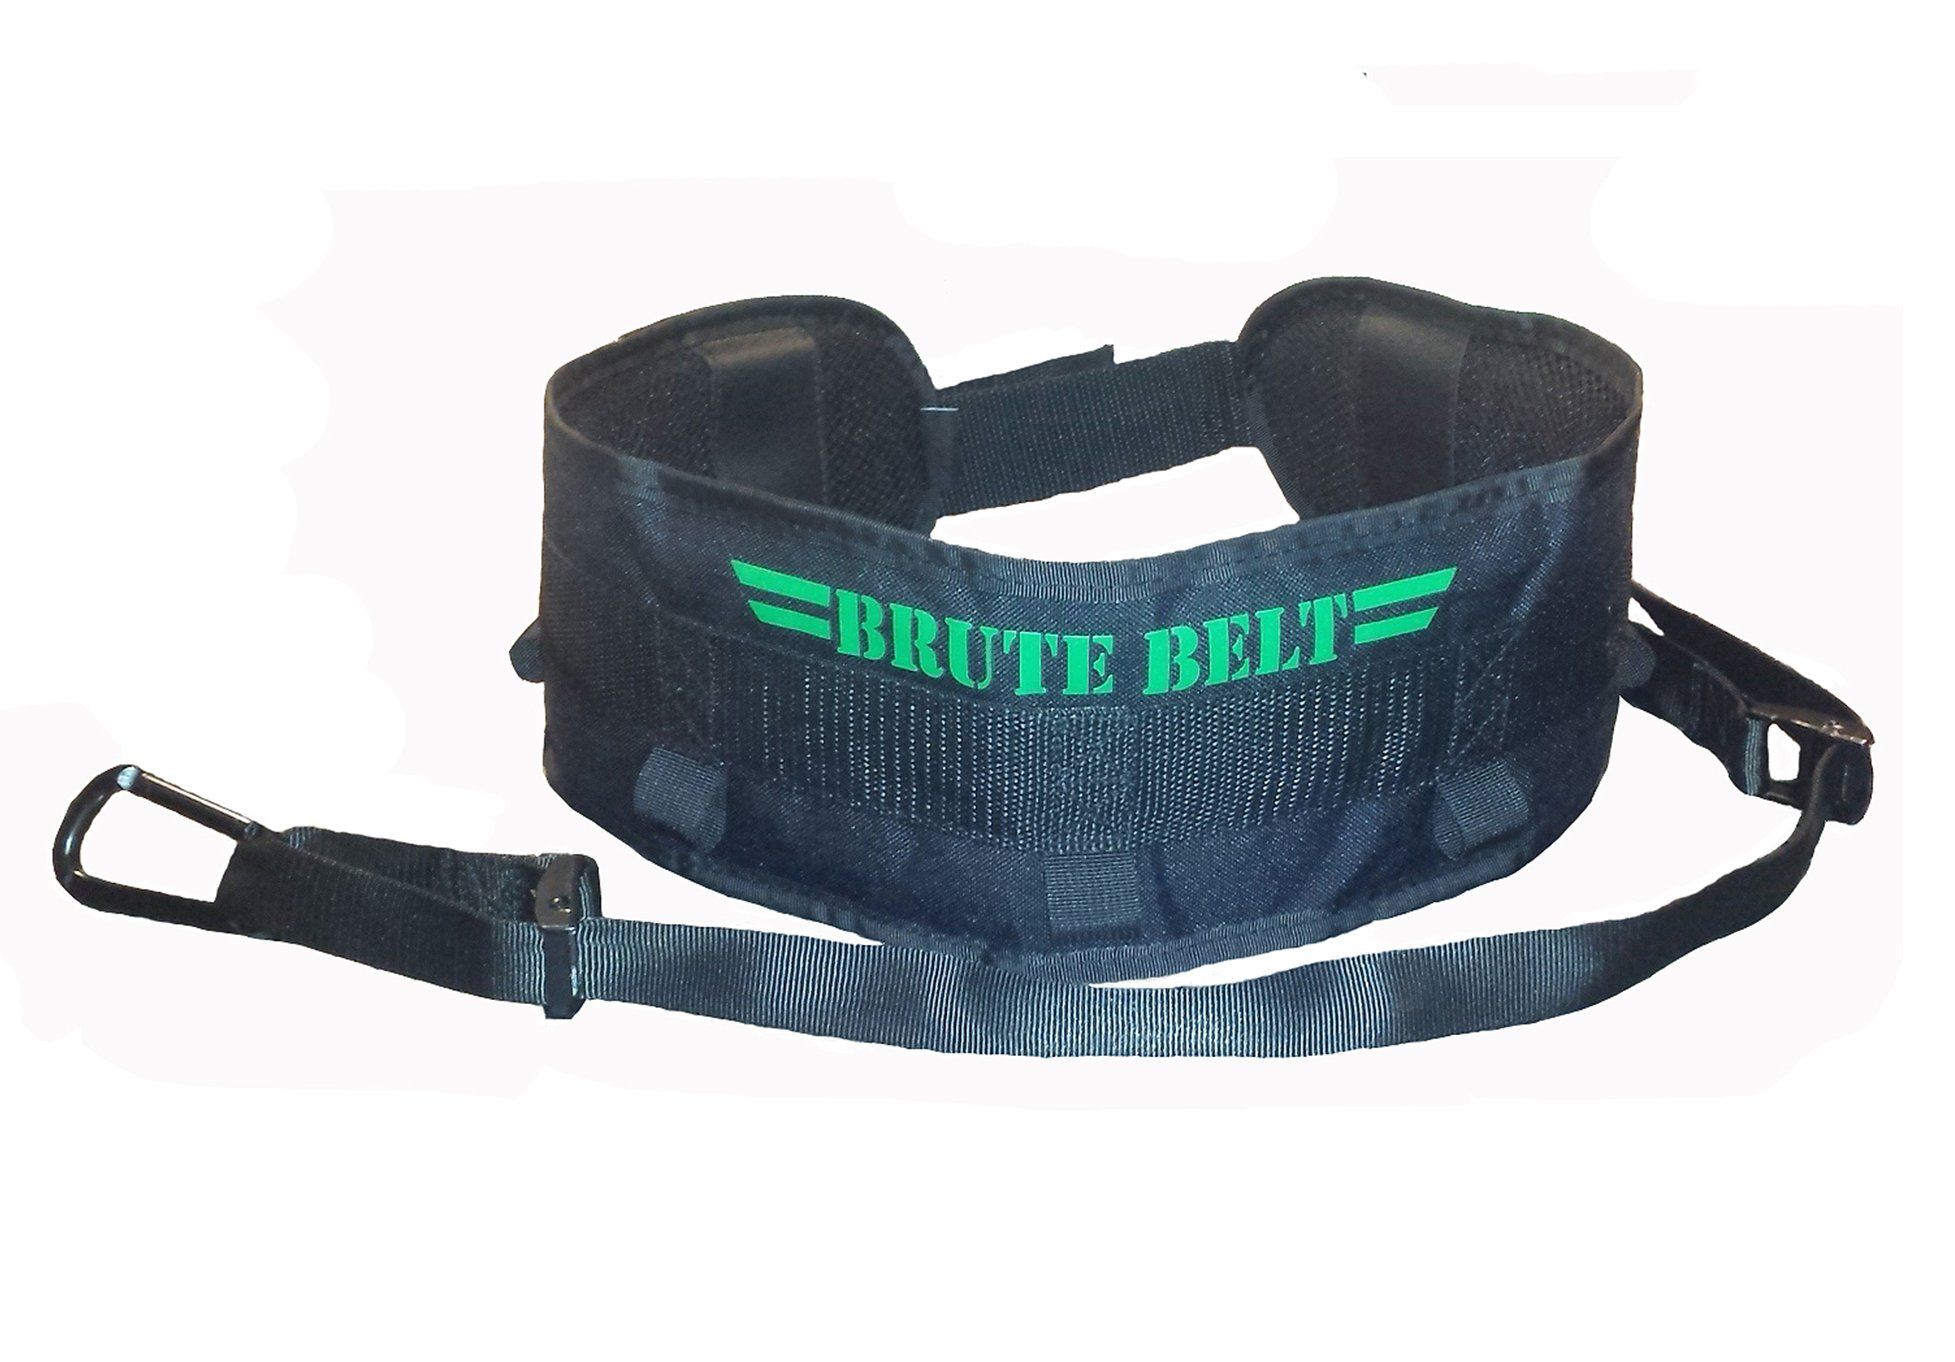 Brute Belt - Nylon Dip Pullup Squat Belt (Black, Small)